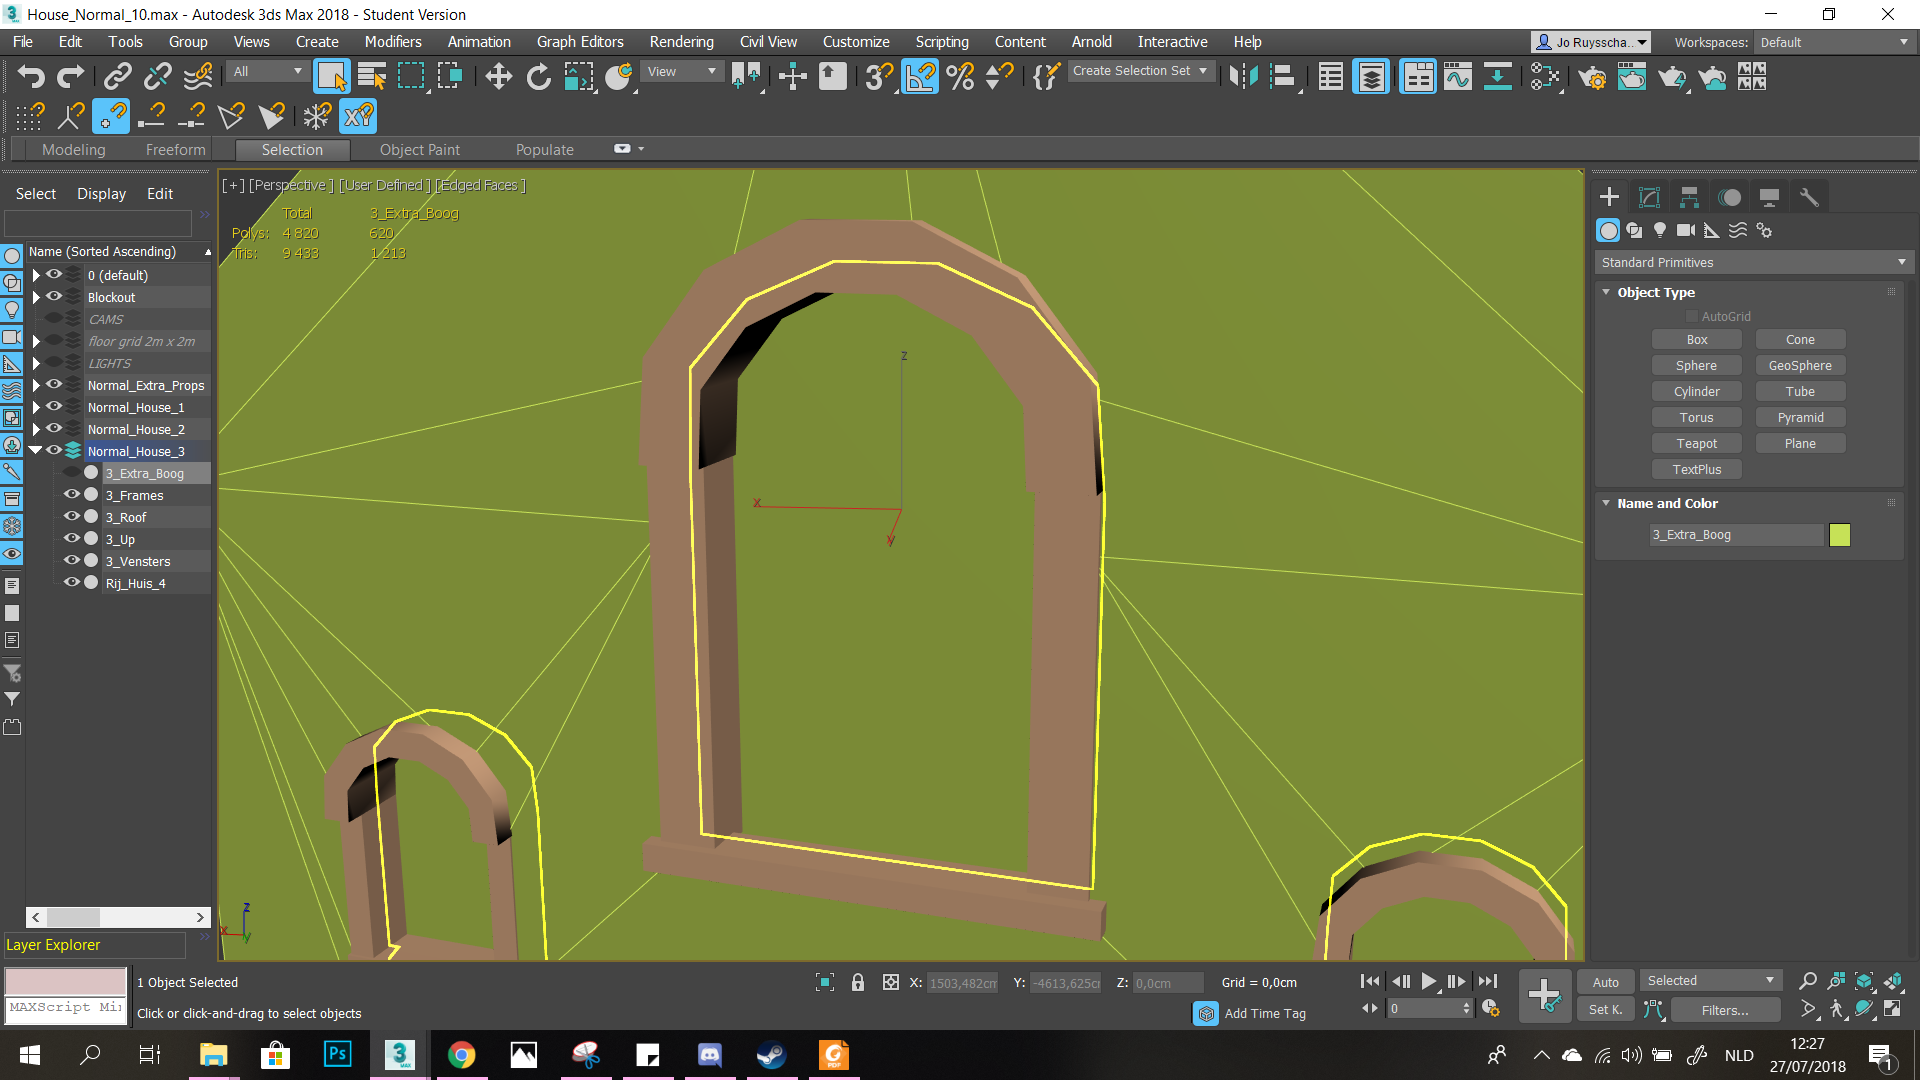 Object disappeared in viewport - Autodesk Community- 3ds Max